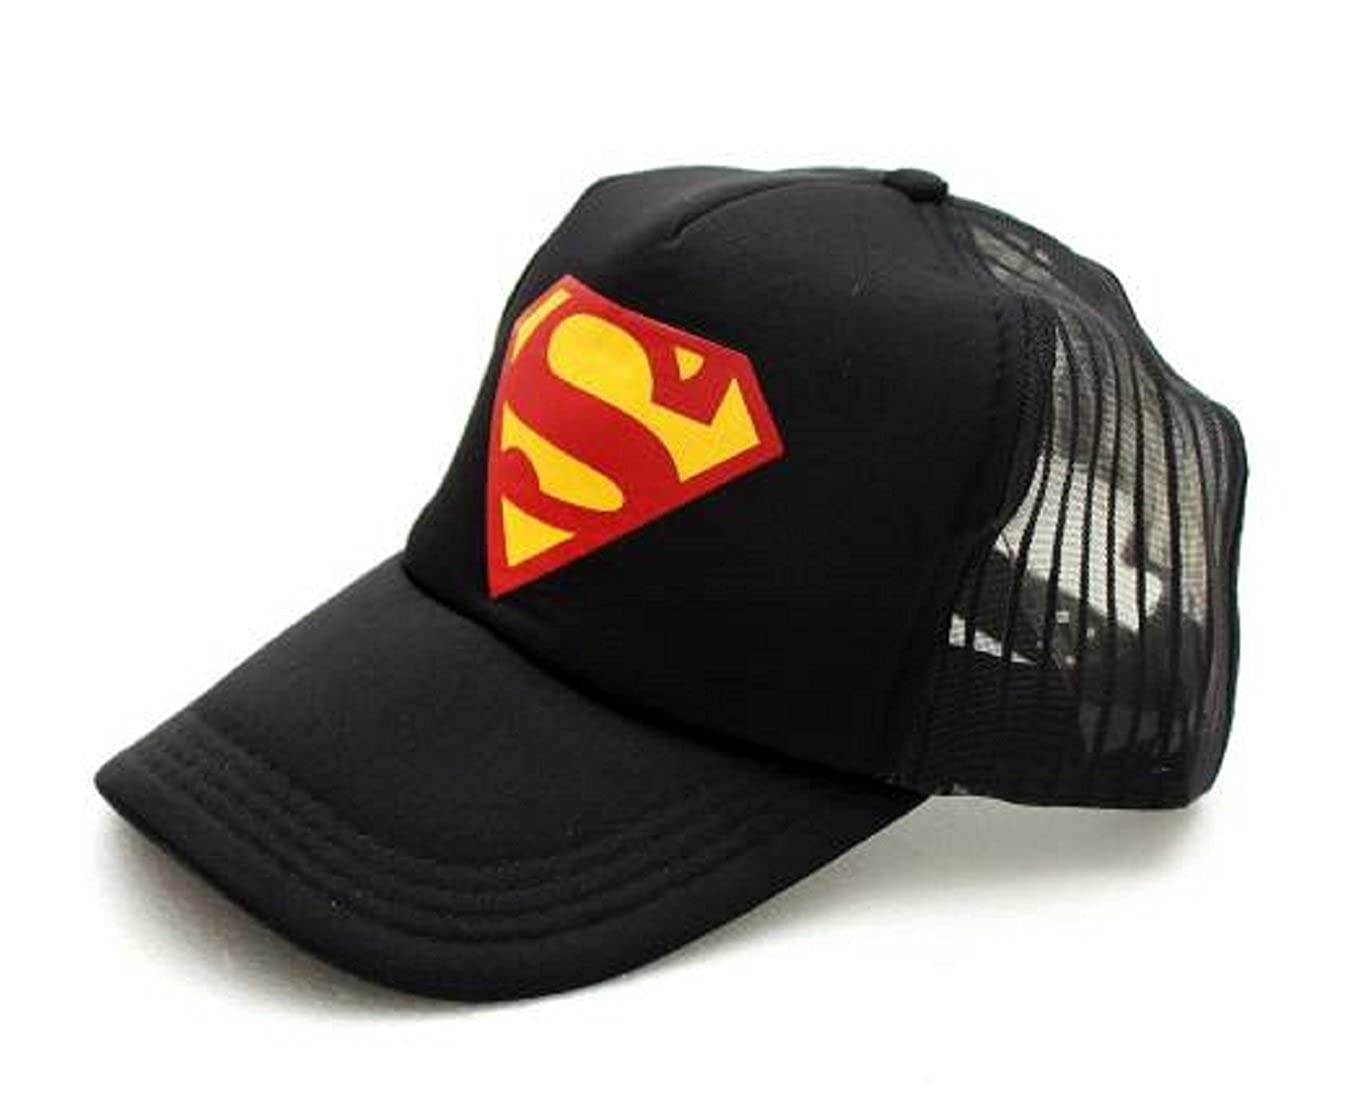 Michelangelo Superman Black HALF NET Cap For Men Girl Womens UNISEX CAP   Amazon.in  Clothing   Accessories 967b3ab105f